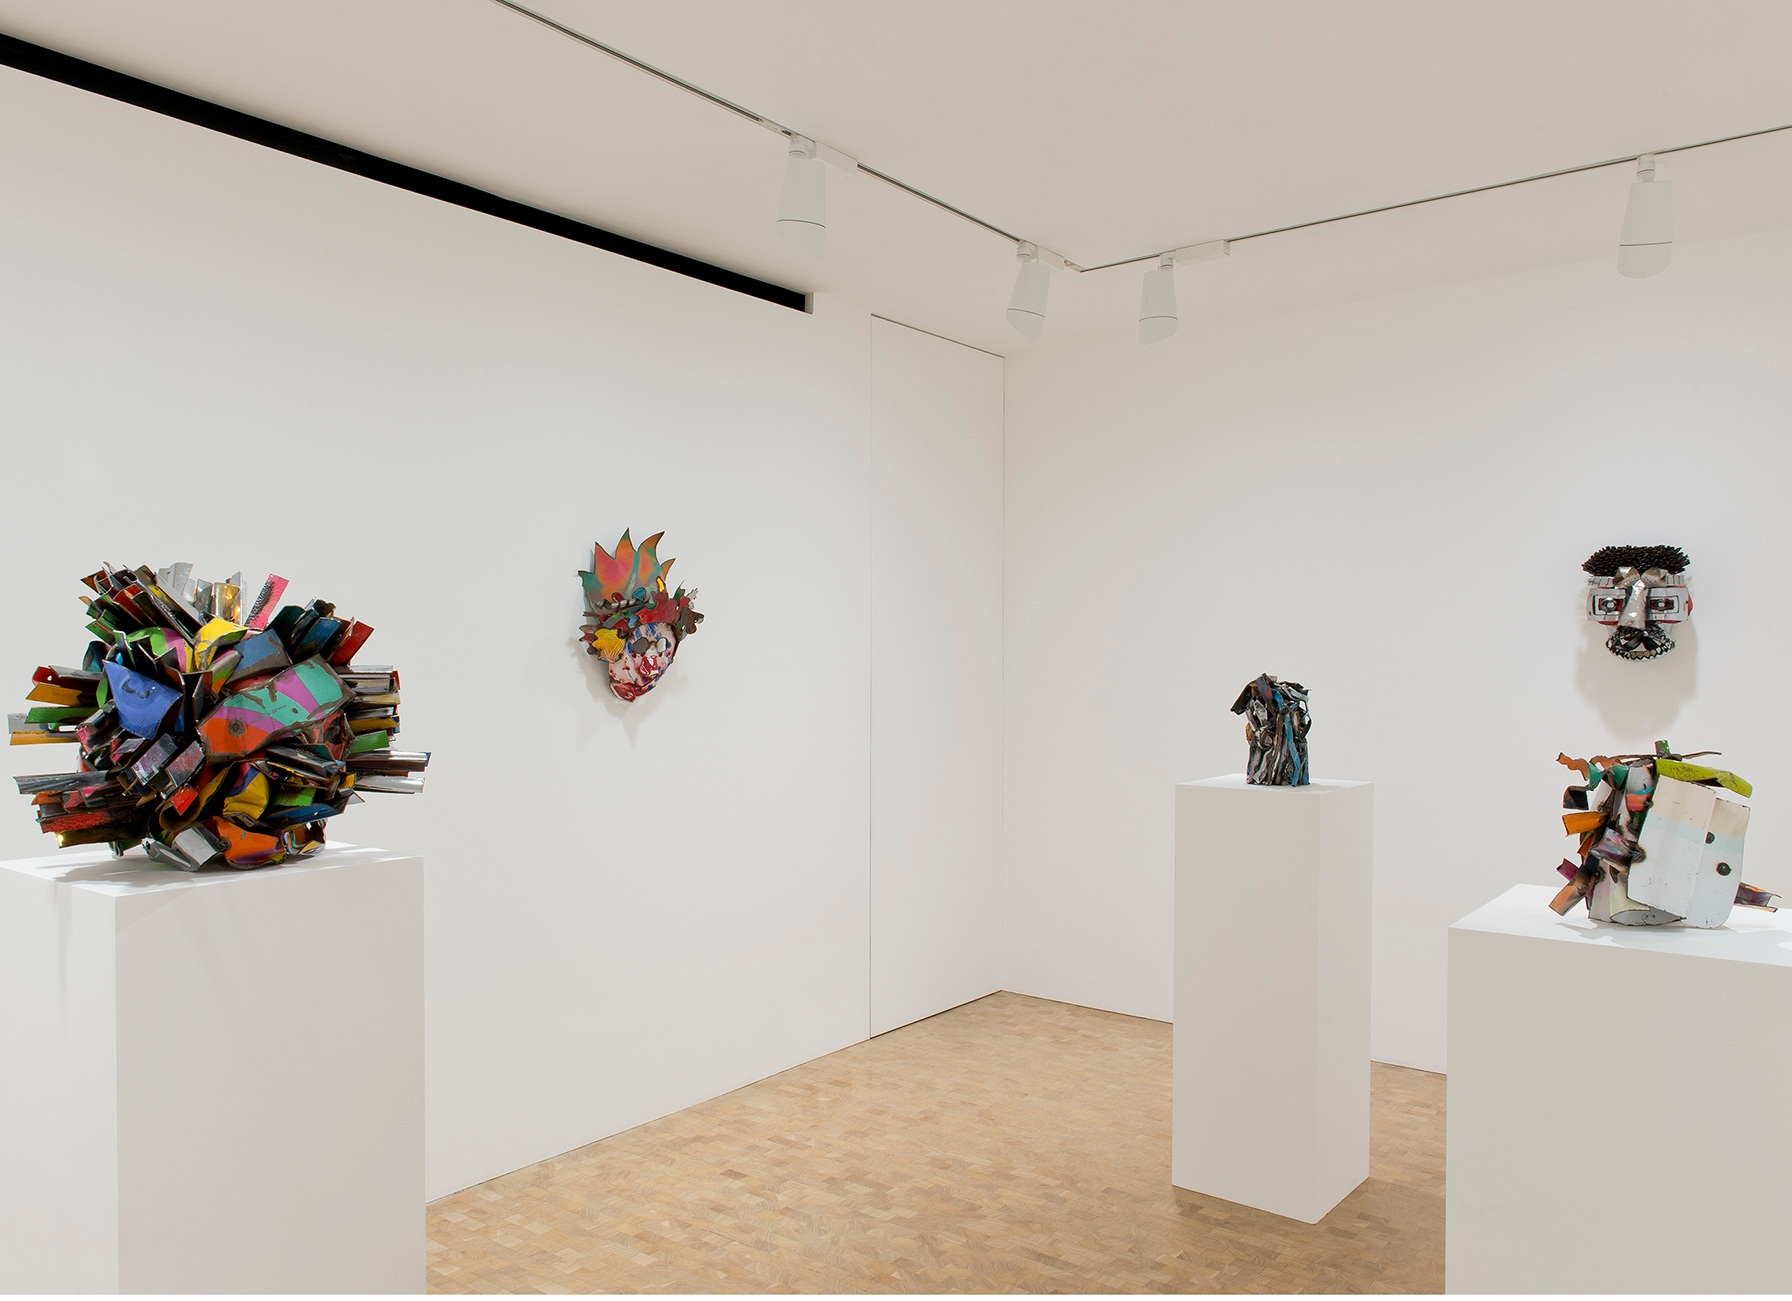 CHAMBERLAIN 2018 ENTIRELYFEARLESS PV room installation view 2.jpg